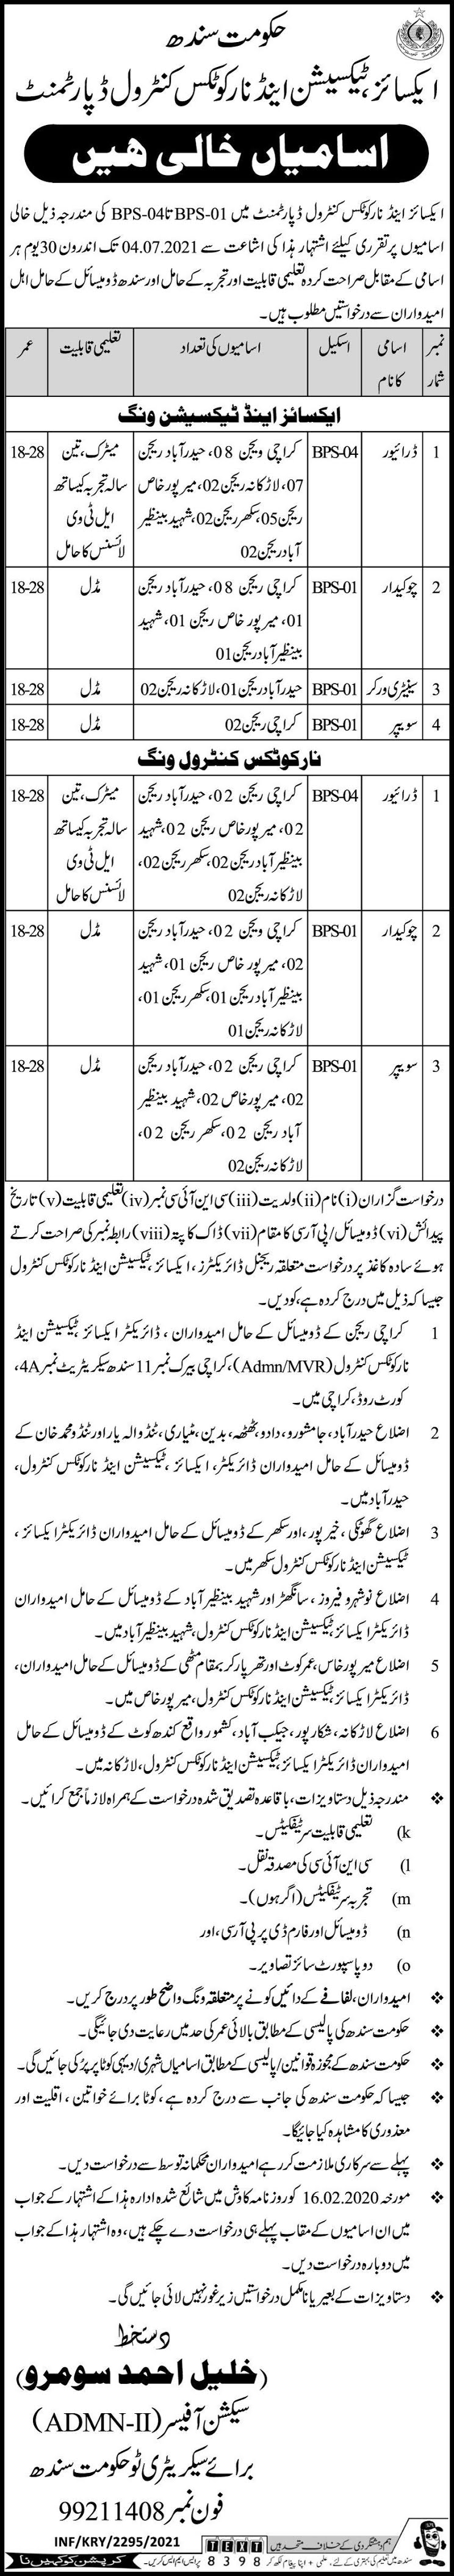 Excise and Taxation Department Jobs 2021